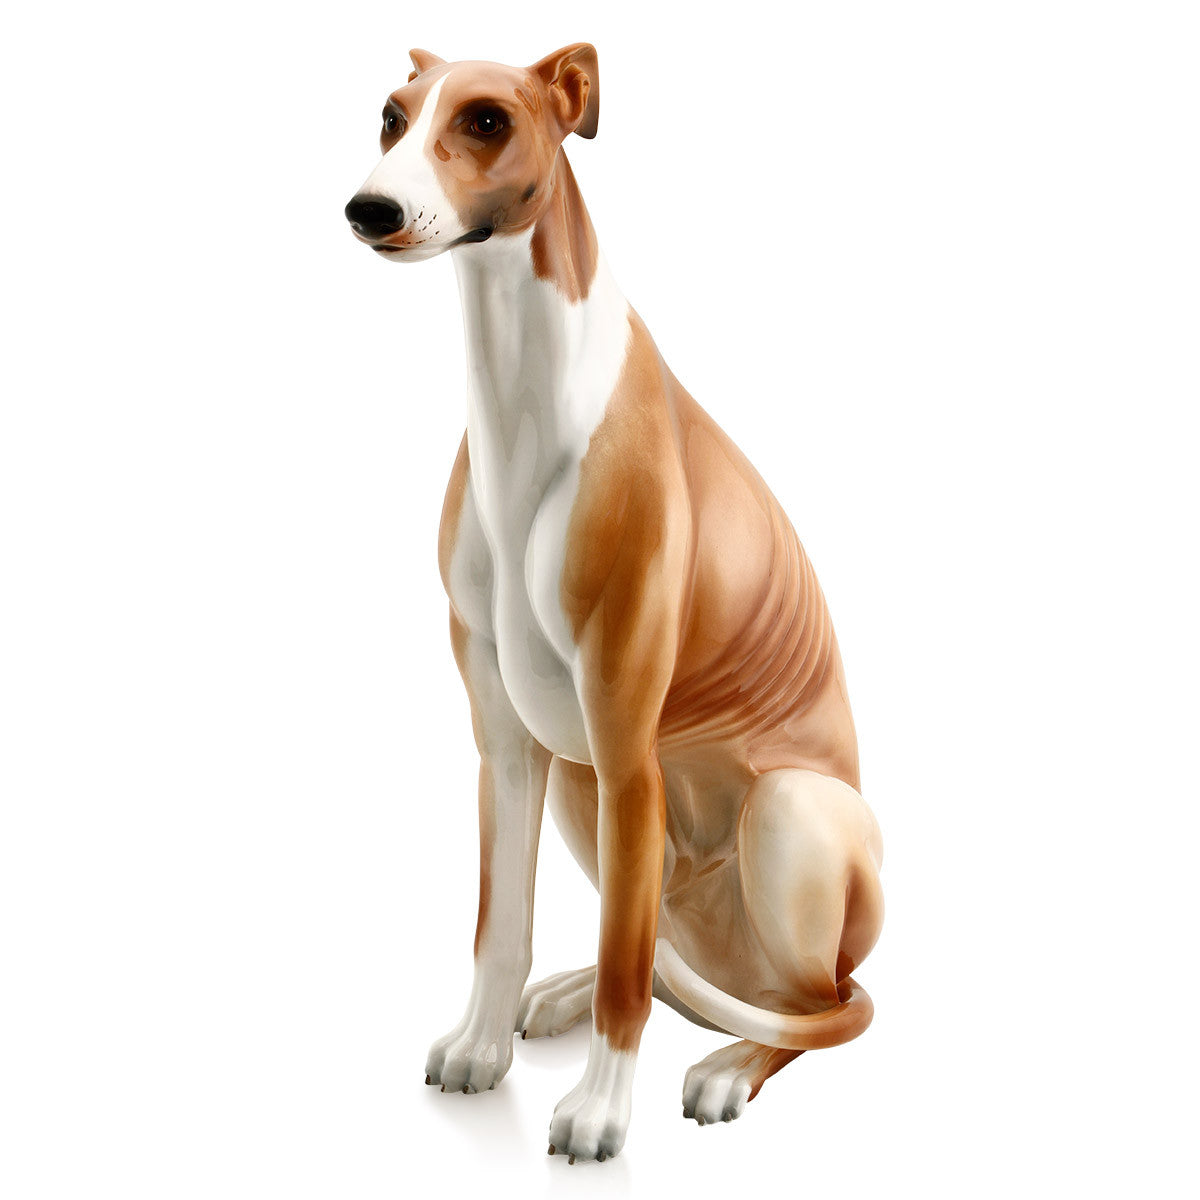 Ceramic big italian greyhound figurine with lifelike details